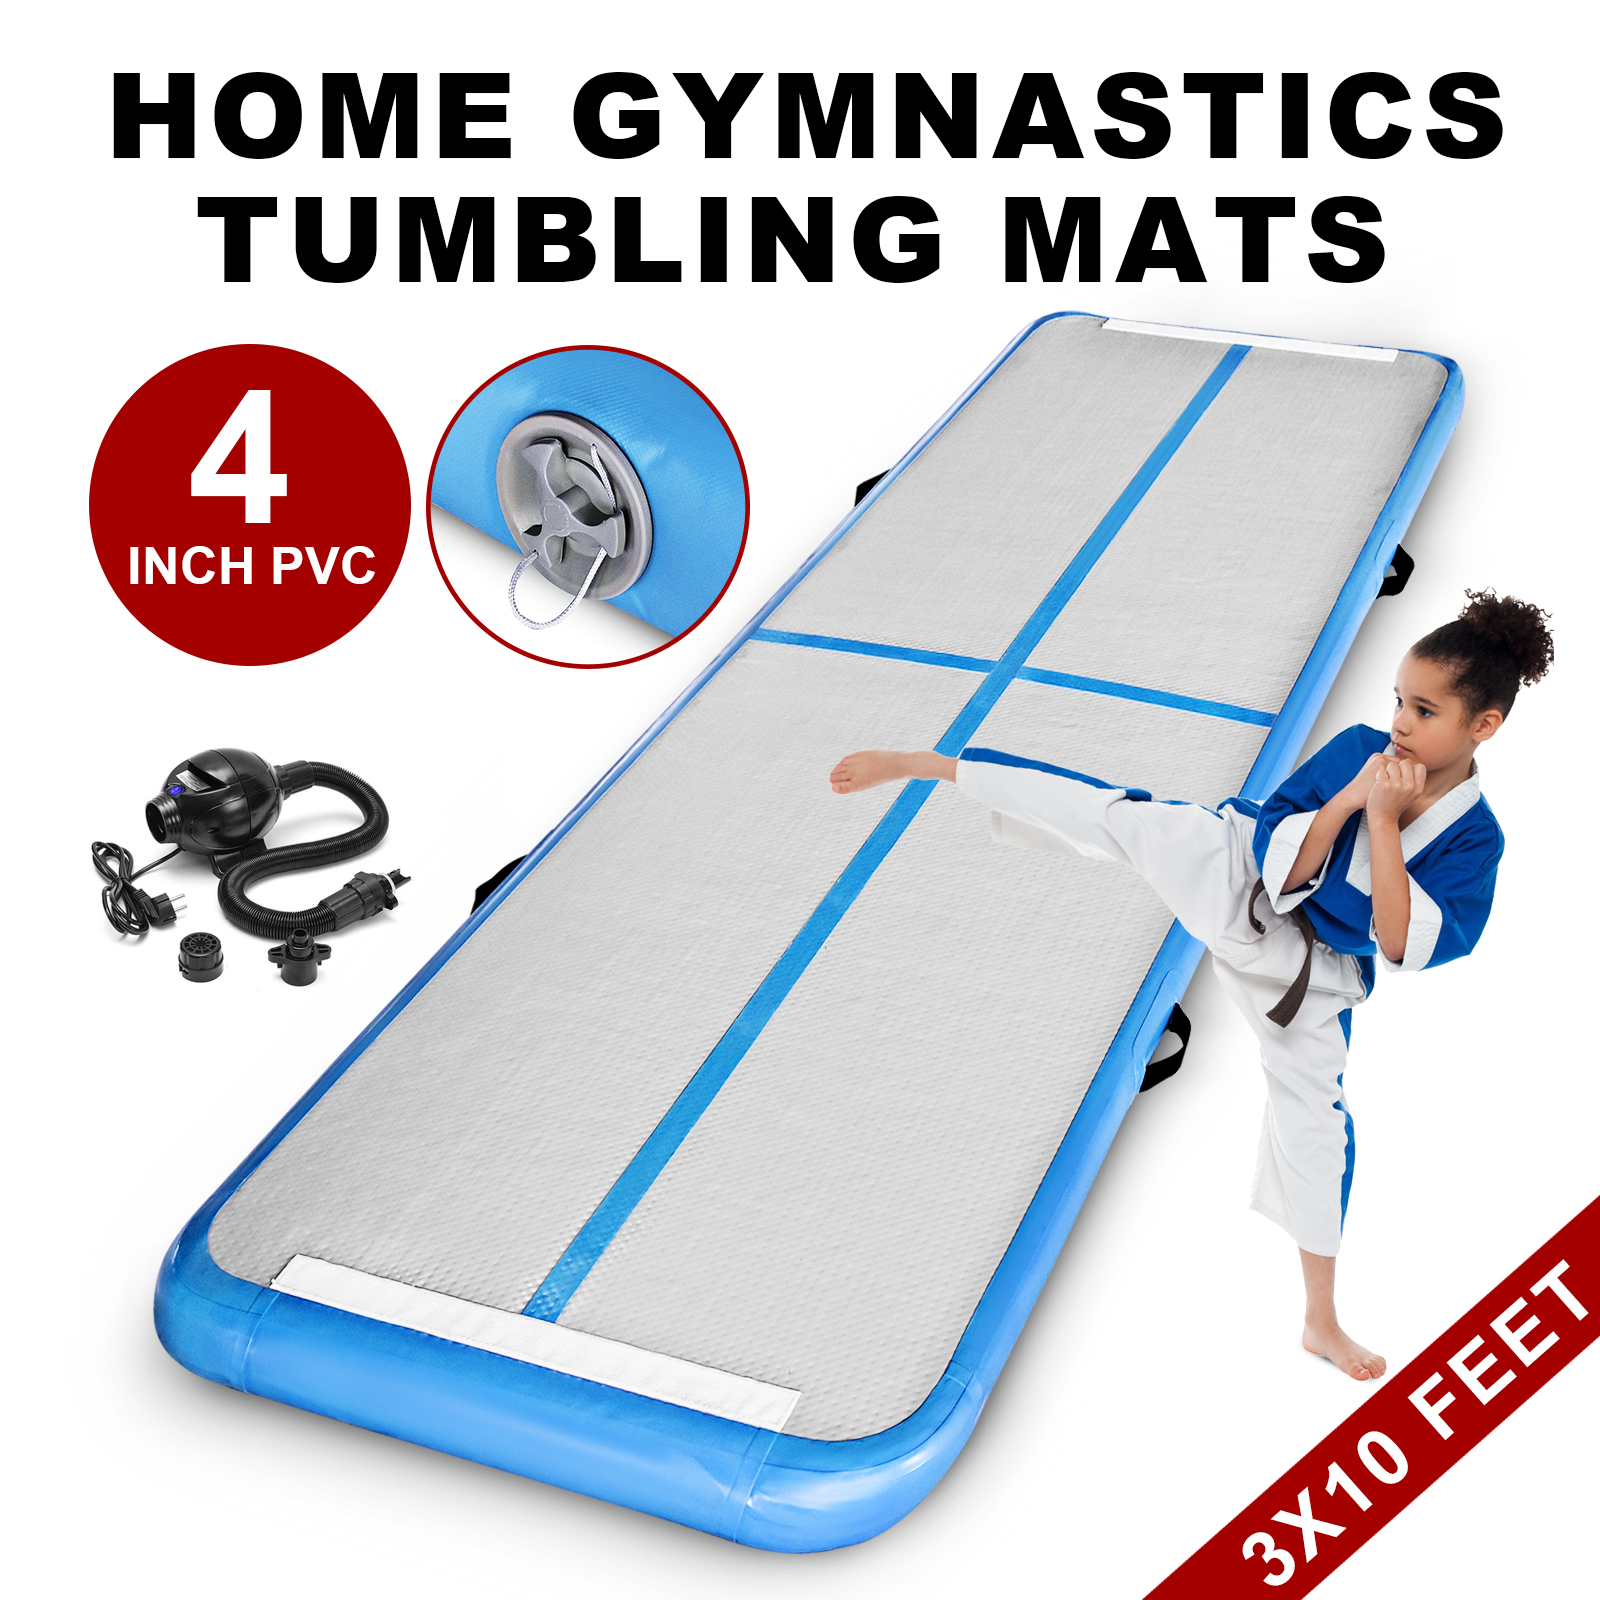 ga tumbling bars gymnastics full safety good right gauteng gear gk free atlanta hire and gibson the uk back edmonton gsc of for interior home gymnastic mats gym comfort size handsprings shop